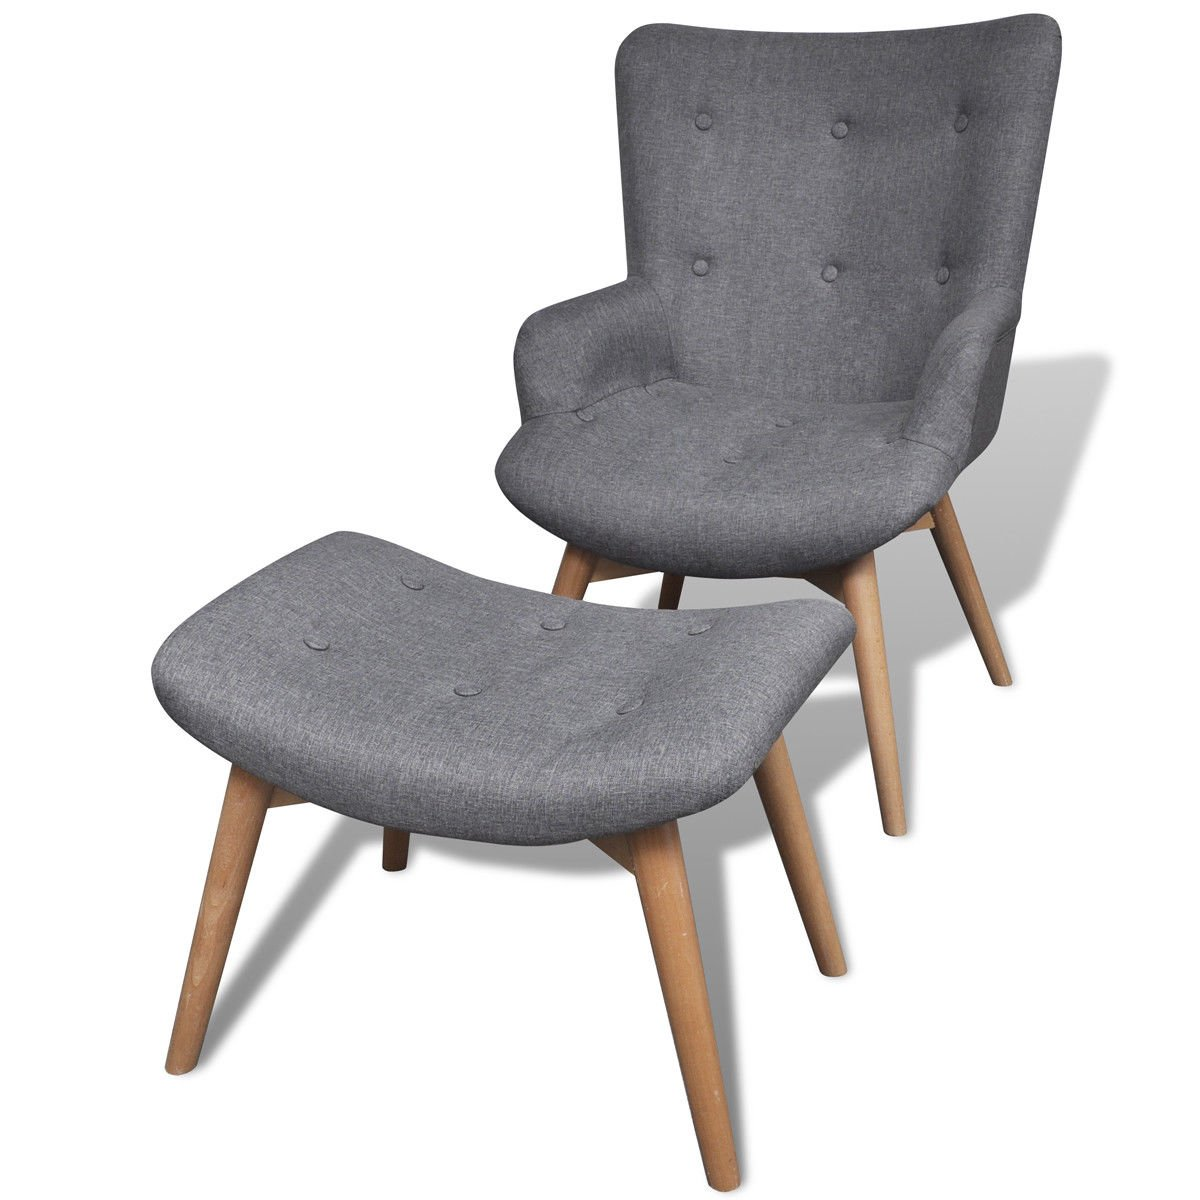 Fabric upholstery and Plywood frame Armchair with Footstool, Gray by HomeSweet